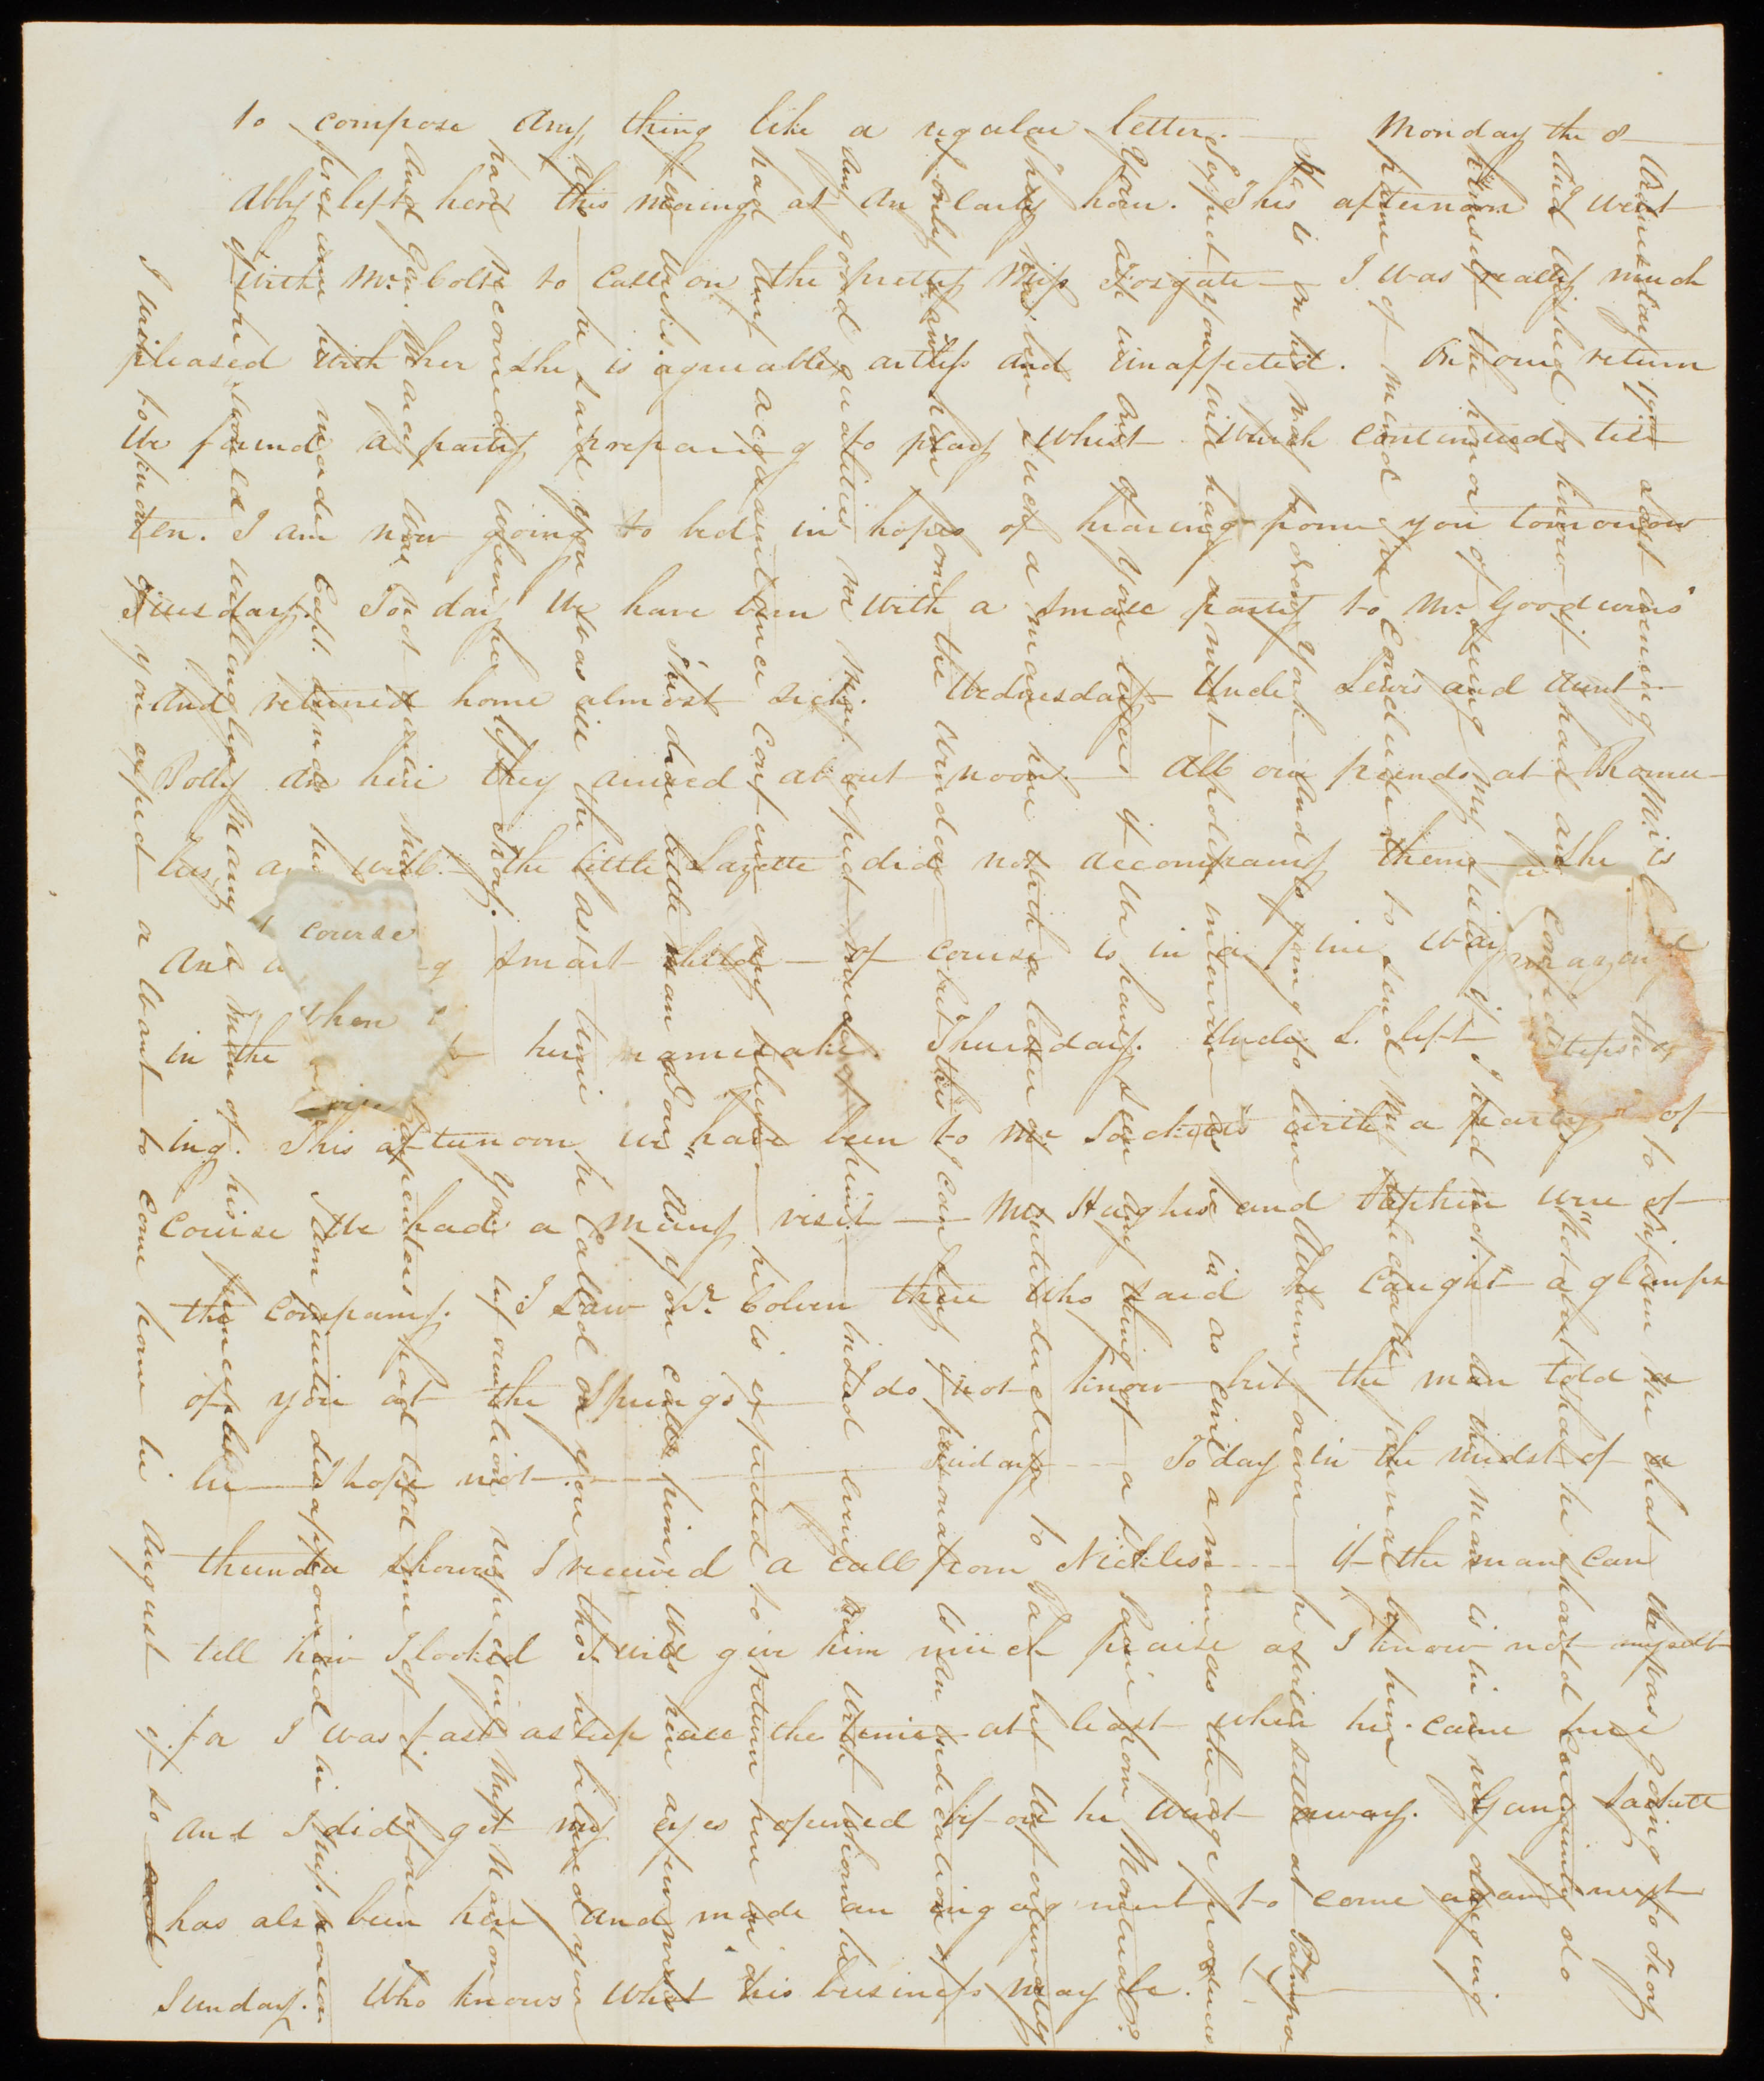 Page 3 of a letter from Lazette Maria Worden to Francis Adeline Seward dated 7 July 1822